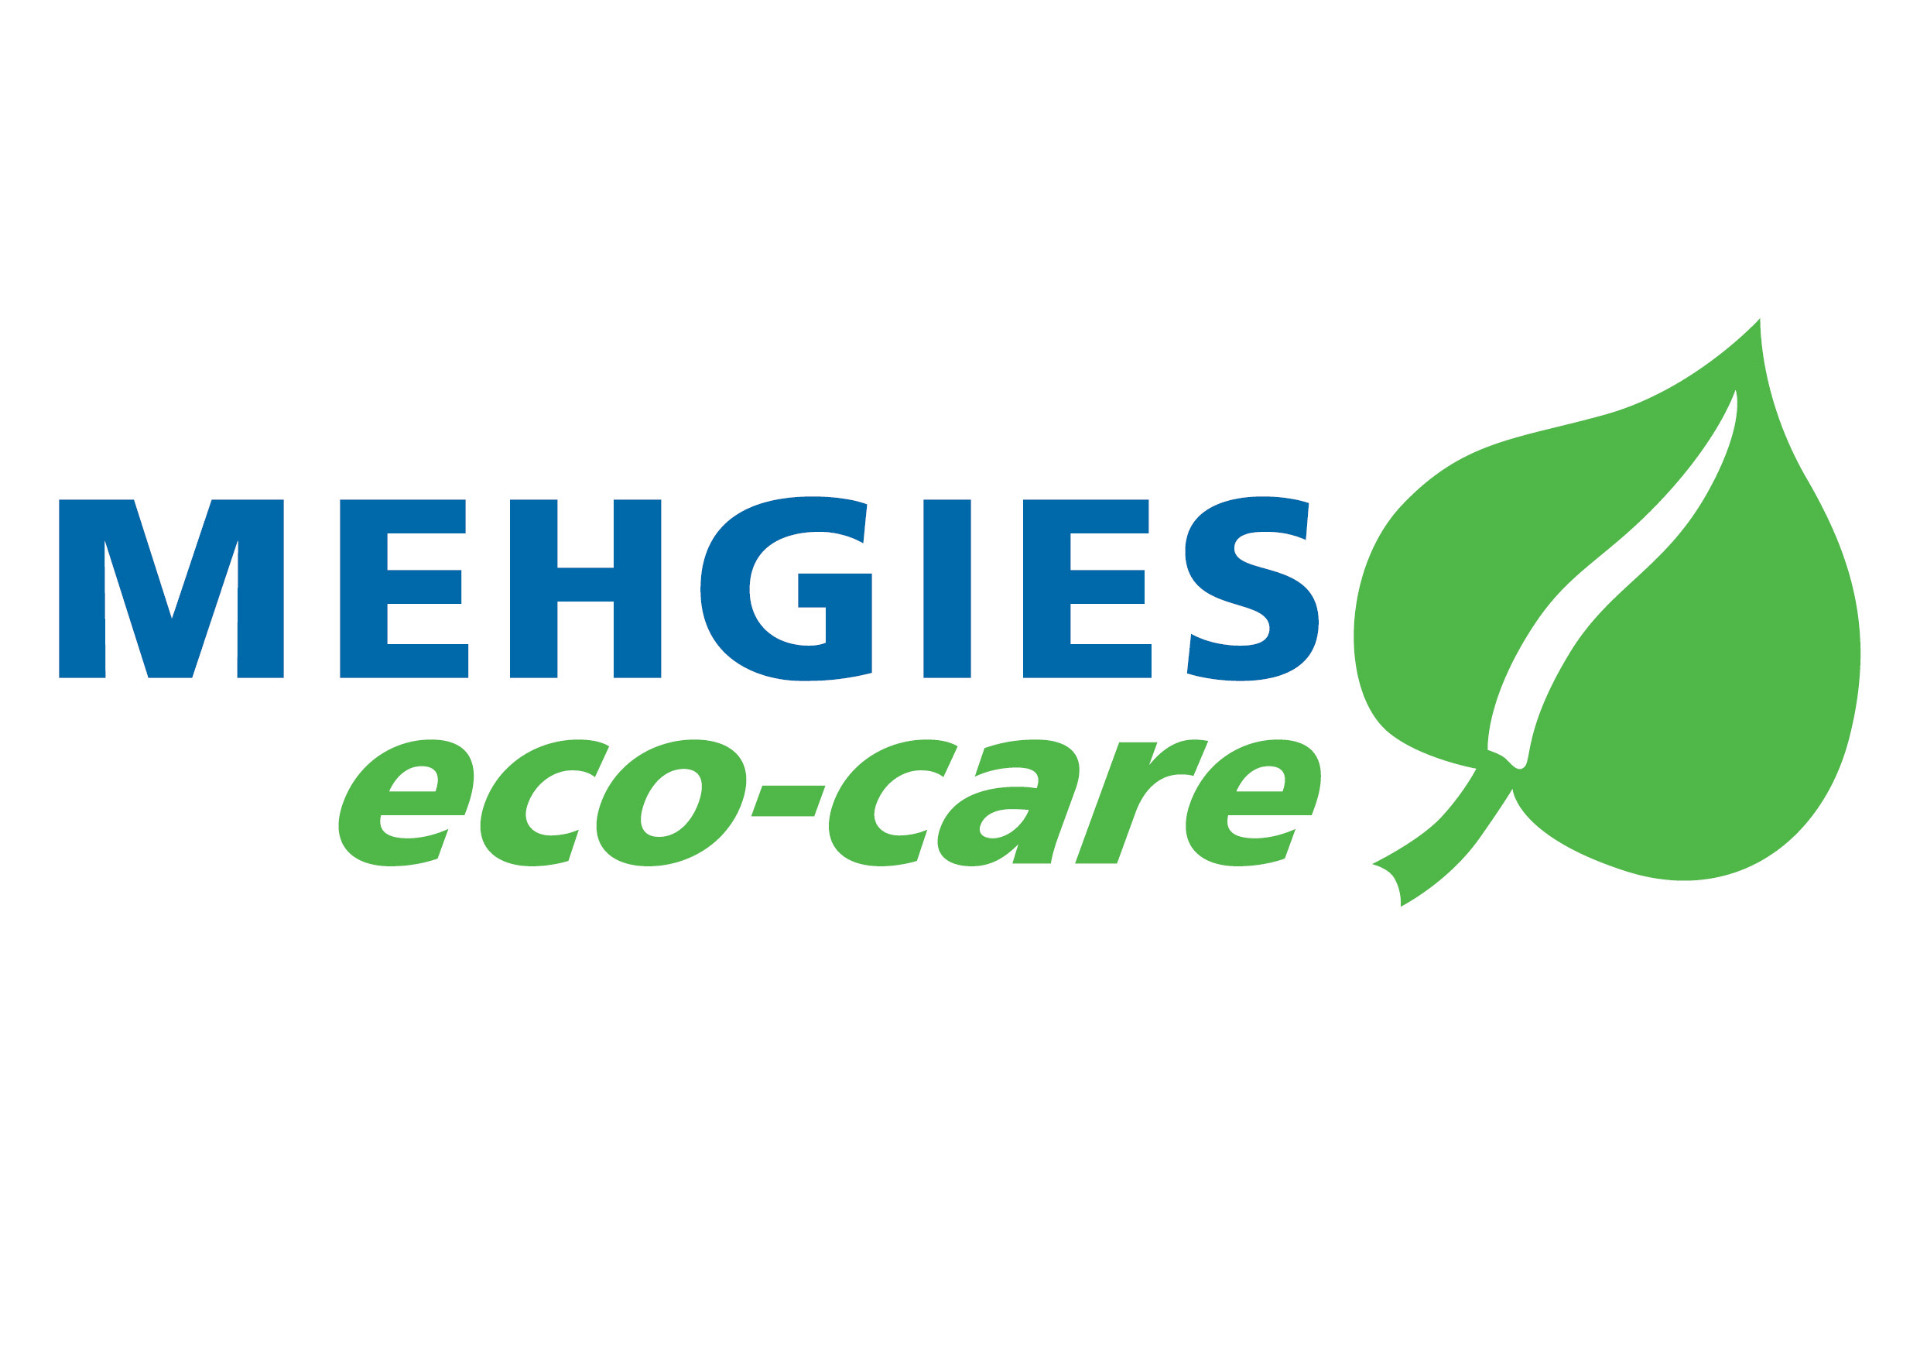 Mehler - eco-care